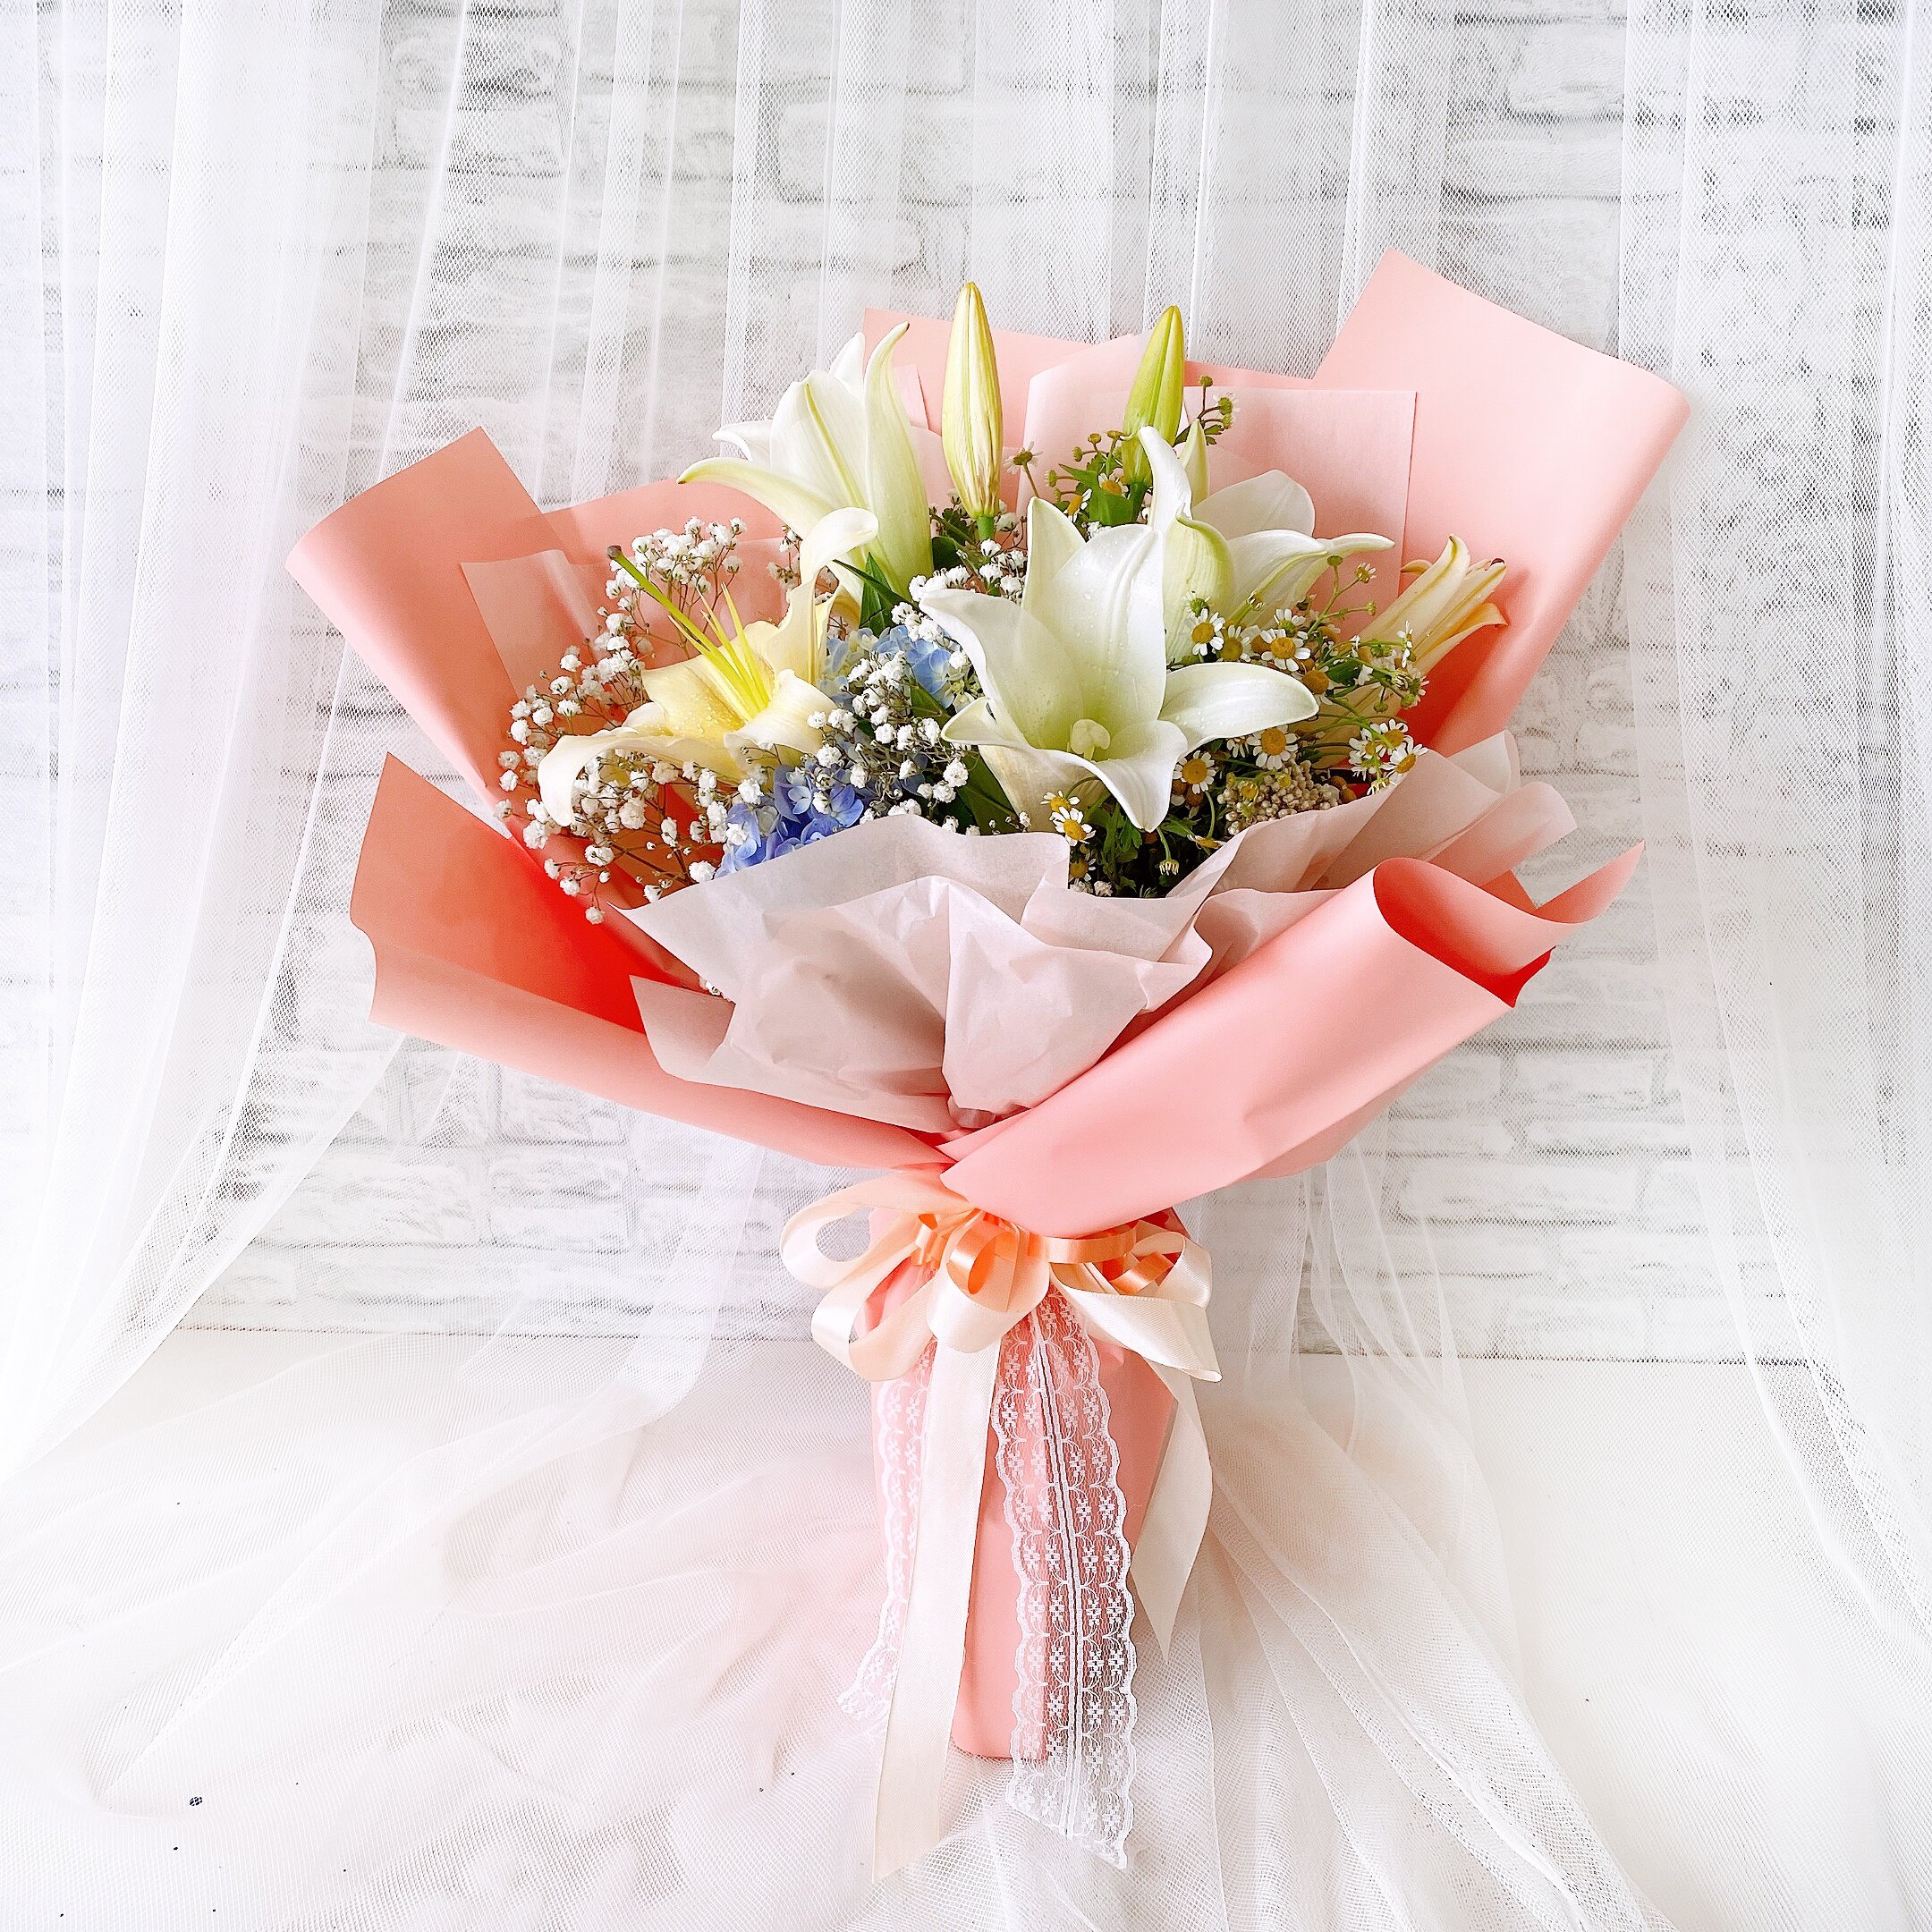 The Beauty - Freeland Floral 自由花苑